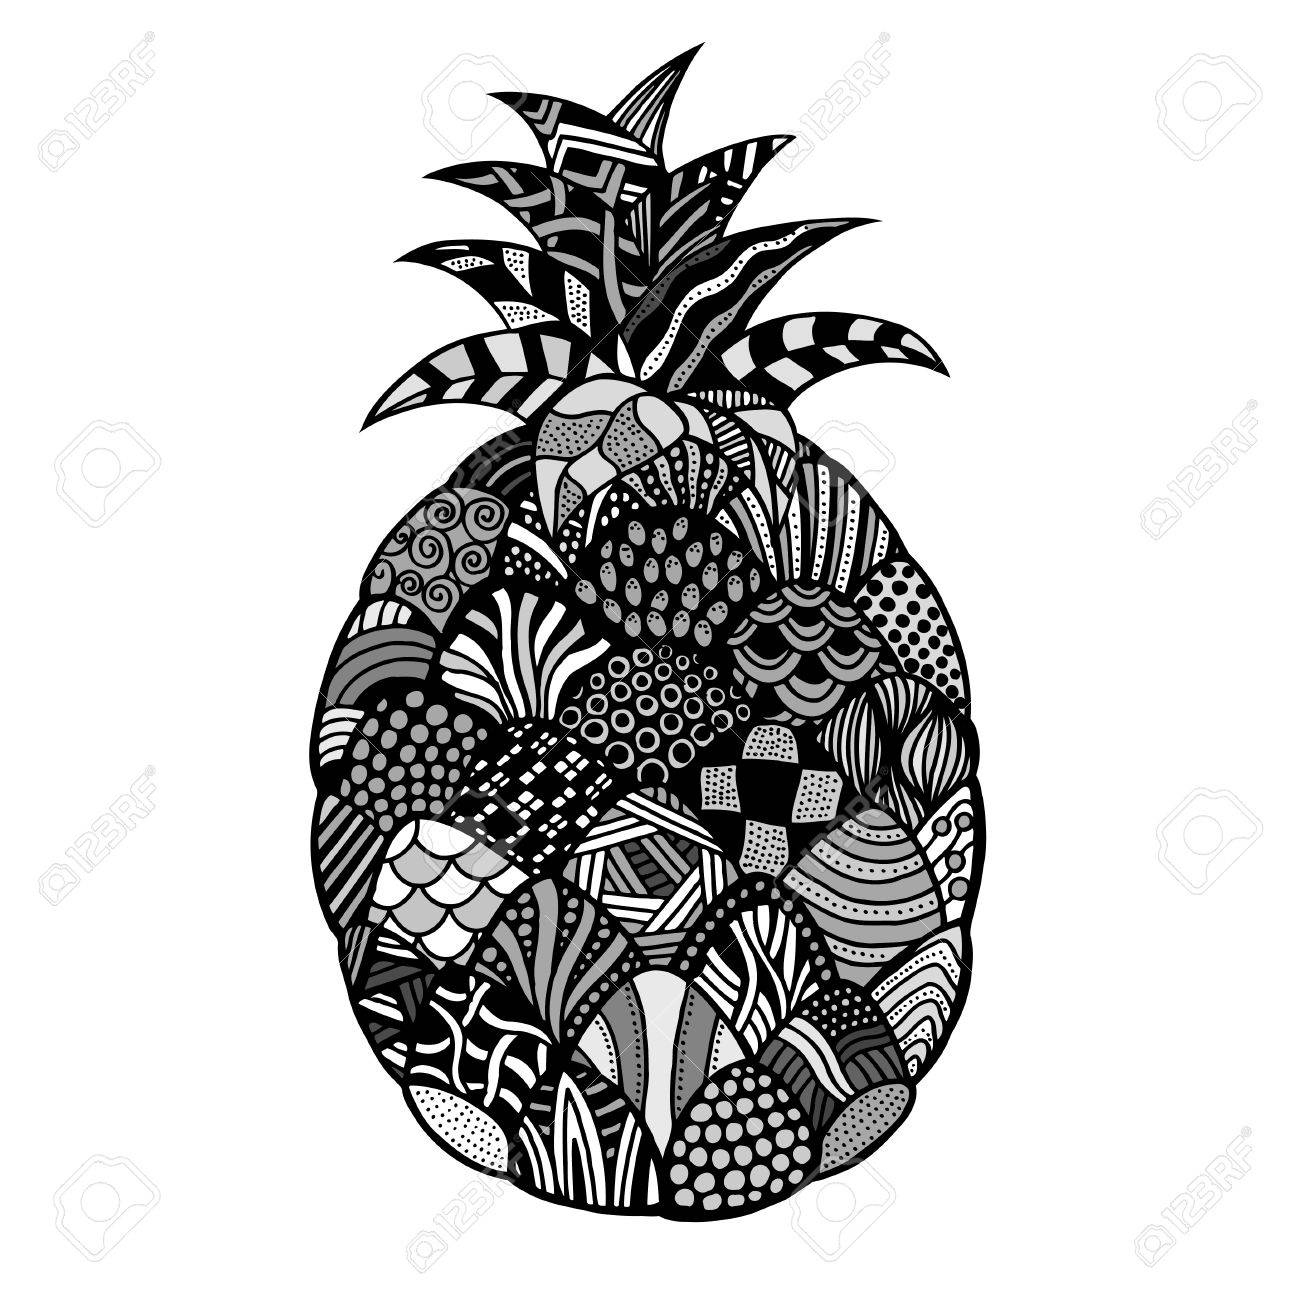 Ananas Plante Fruits Exotiques Dessin Au Trait Noir Et Blanc Dessiné à La Main Illustration Vectorielle De Doodle Décoratif Stylisé Tatouage